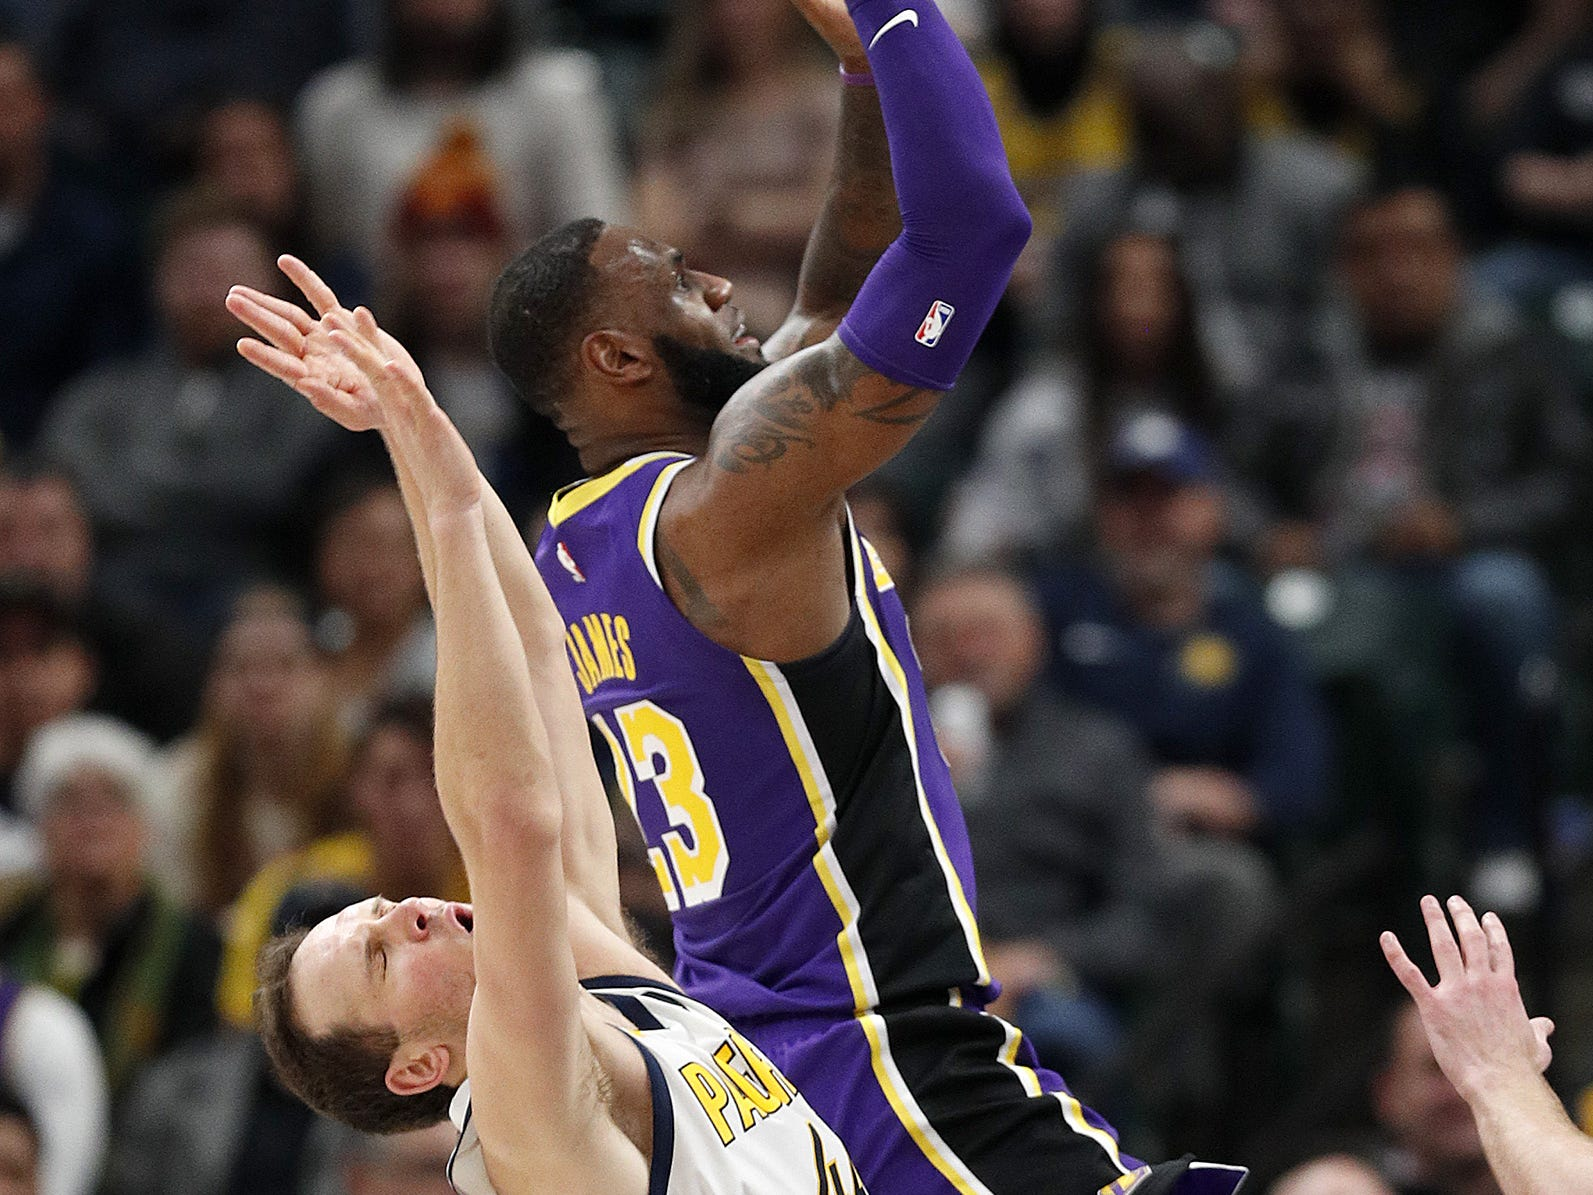 Los Angeles Lakers forward LeBron James (23) shoots over Indiana Pacers forward Bojan Bogdanovic (44) in the first half of their game at Bankers Life Fieldouse on Tuesday, Feb. 5, 2019.